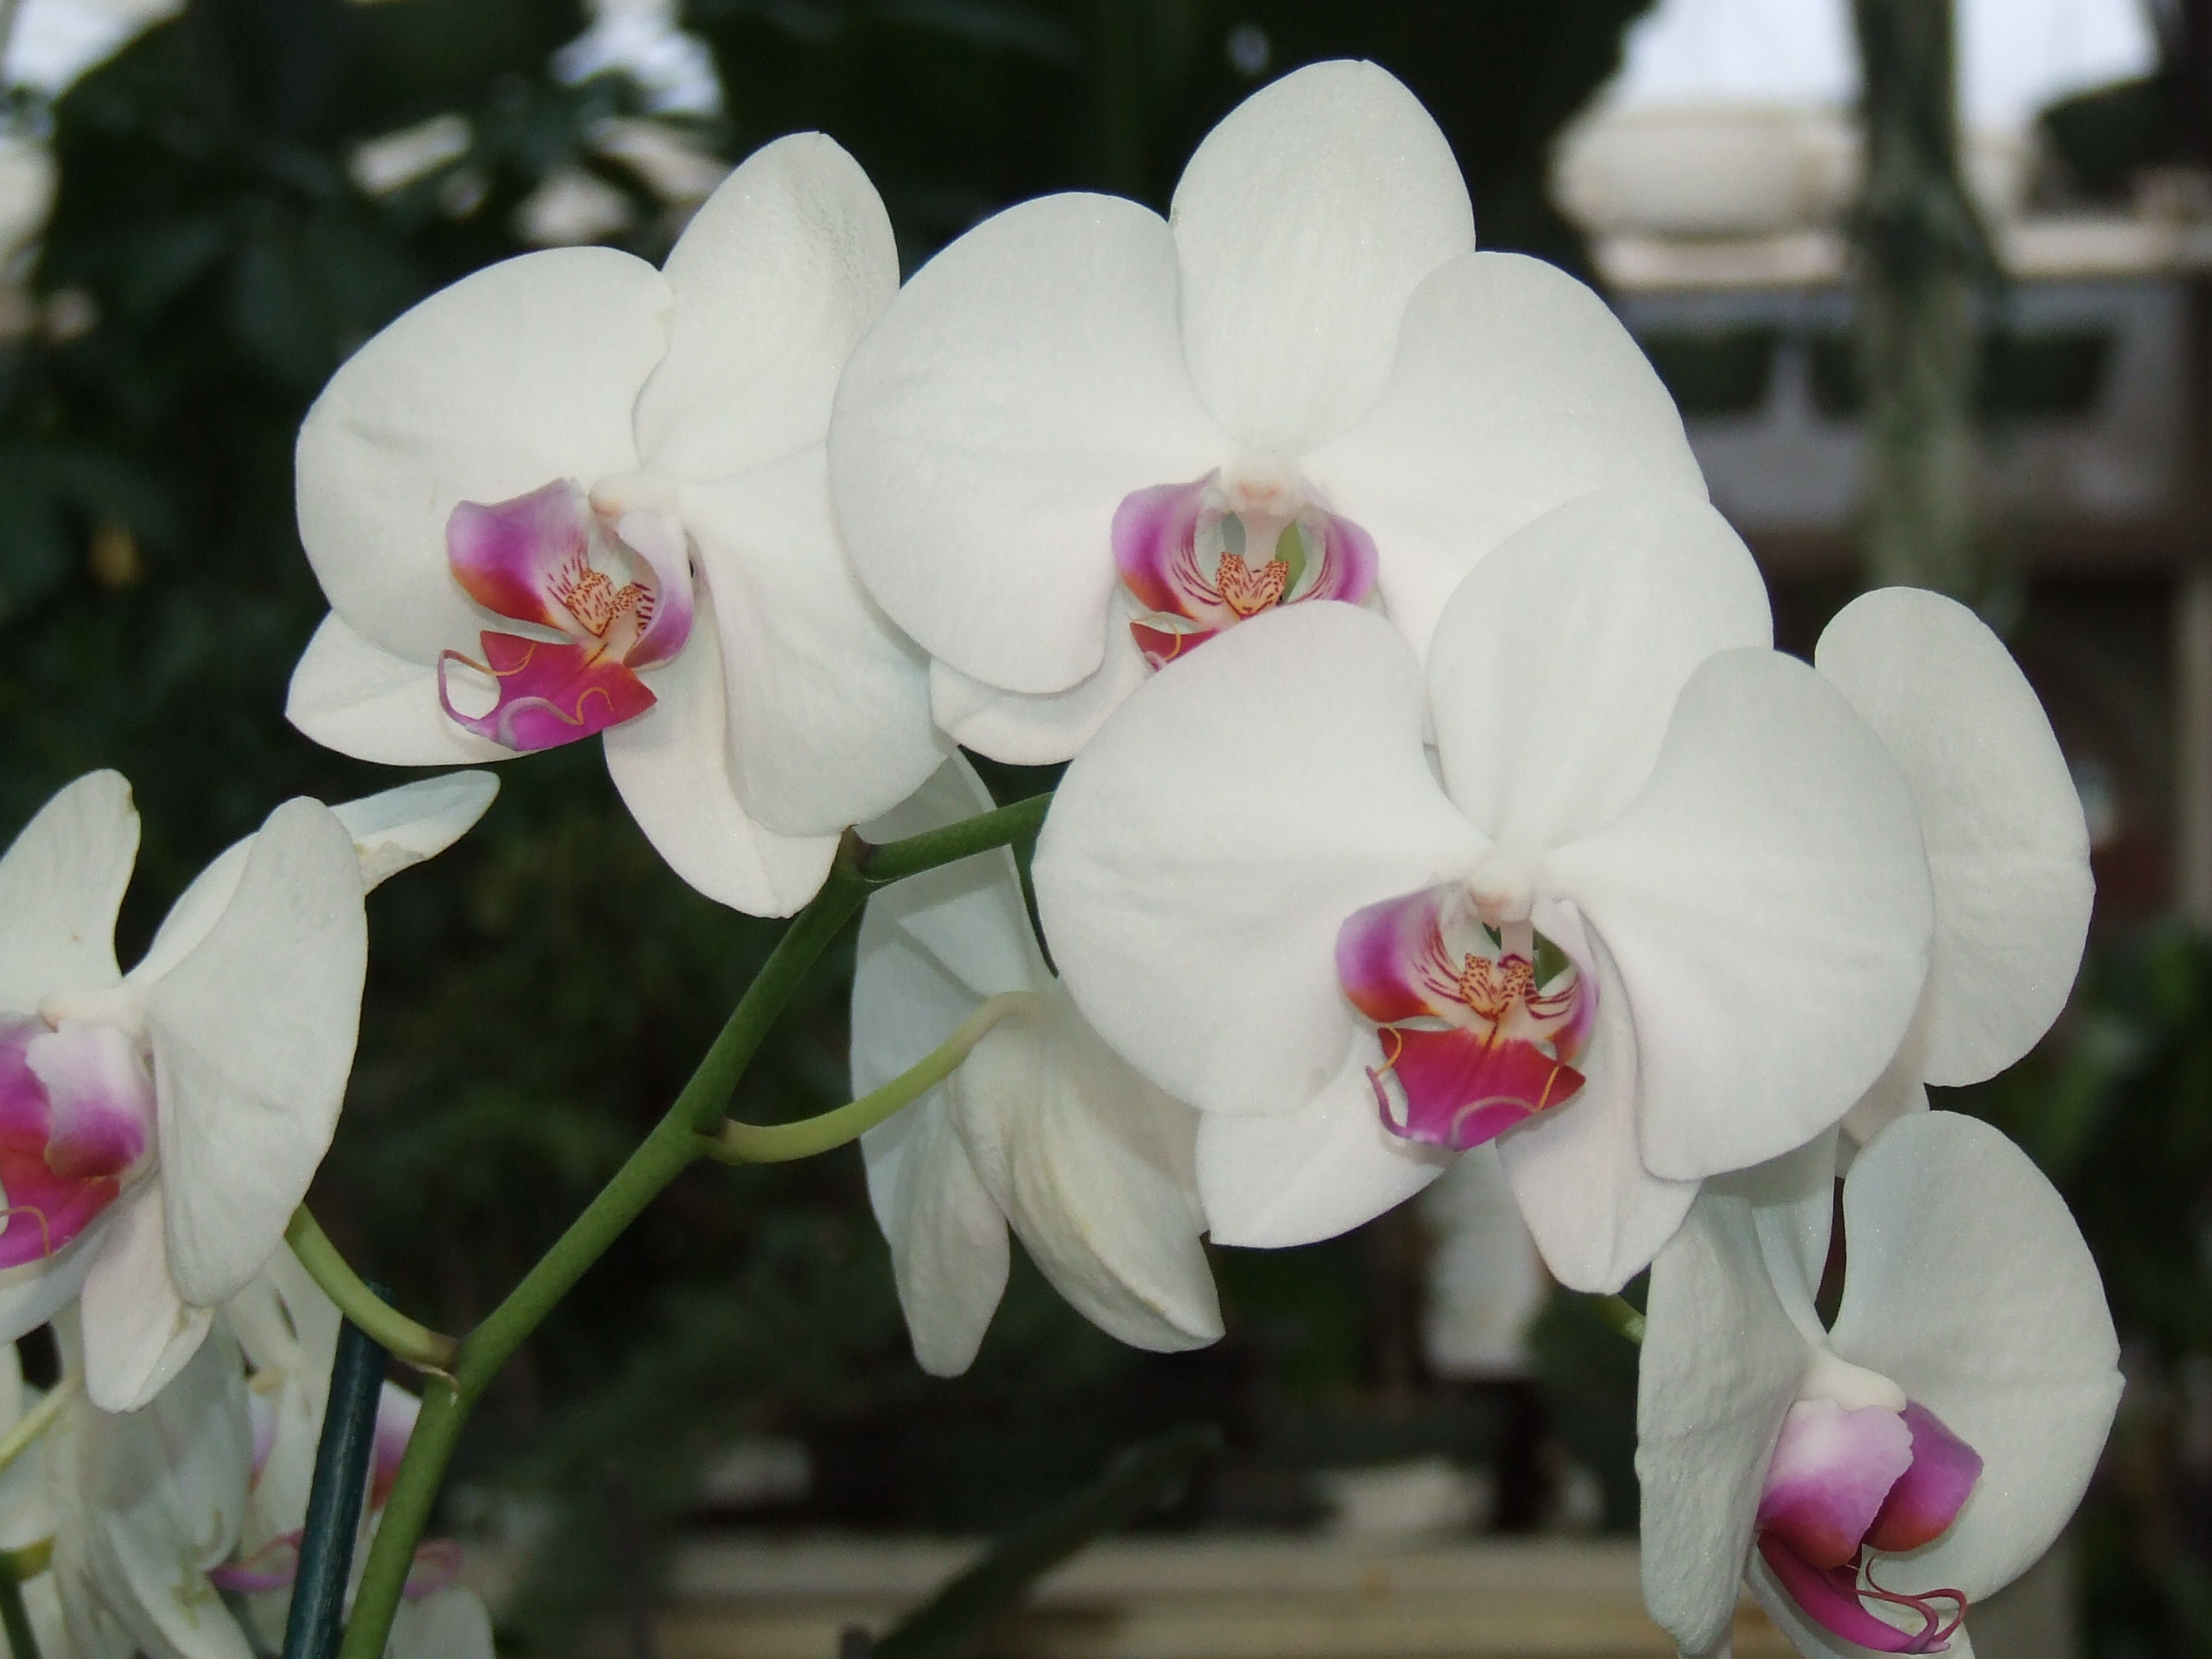 flowering spike of a Phalaenopsis